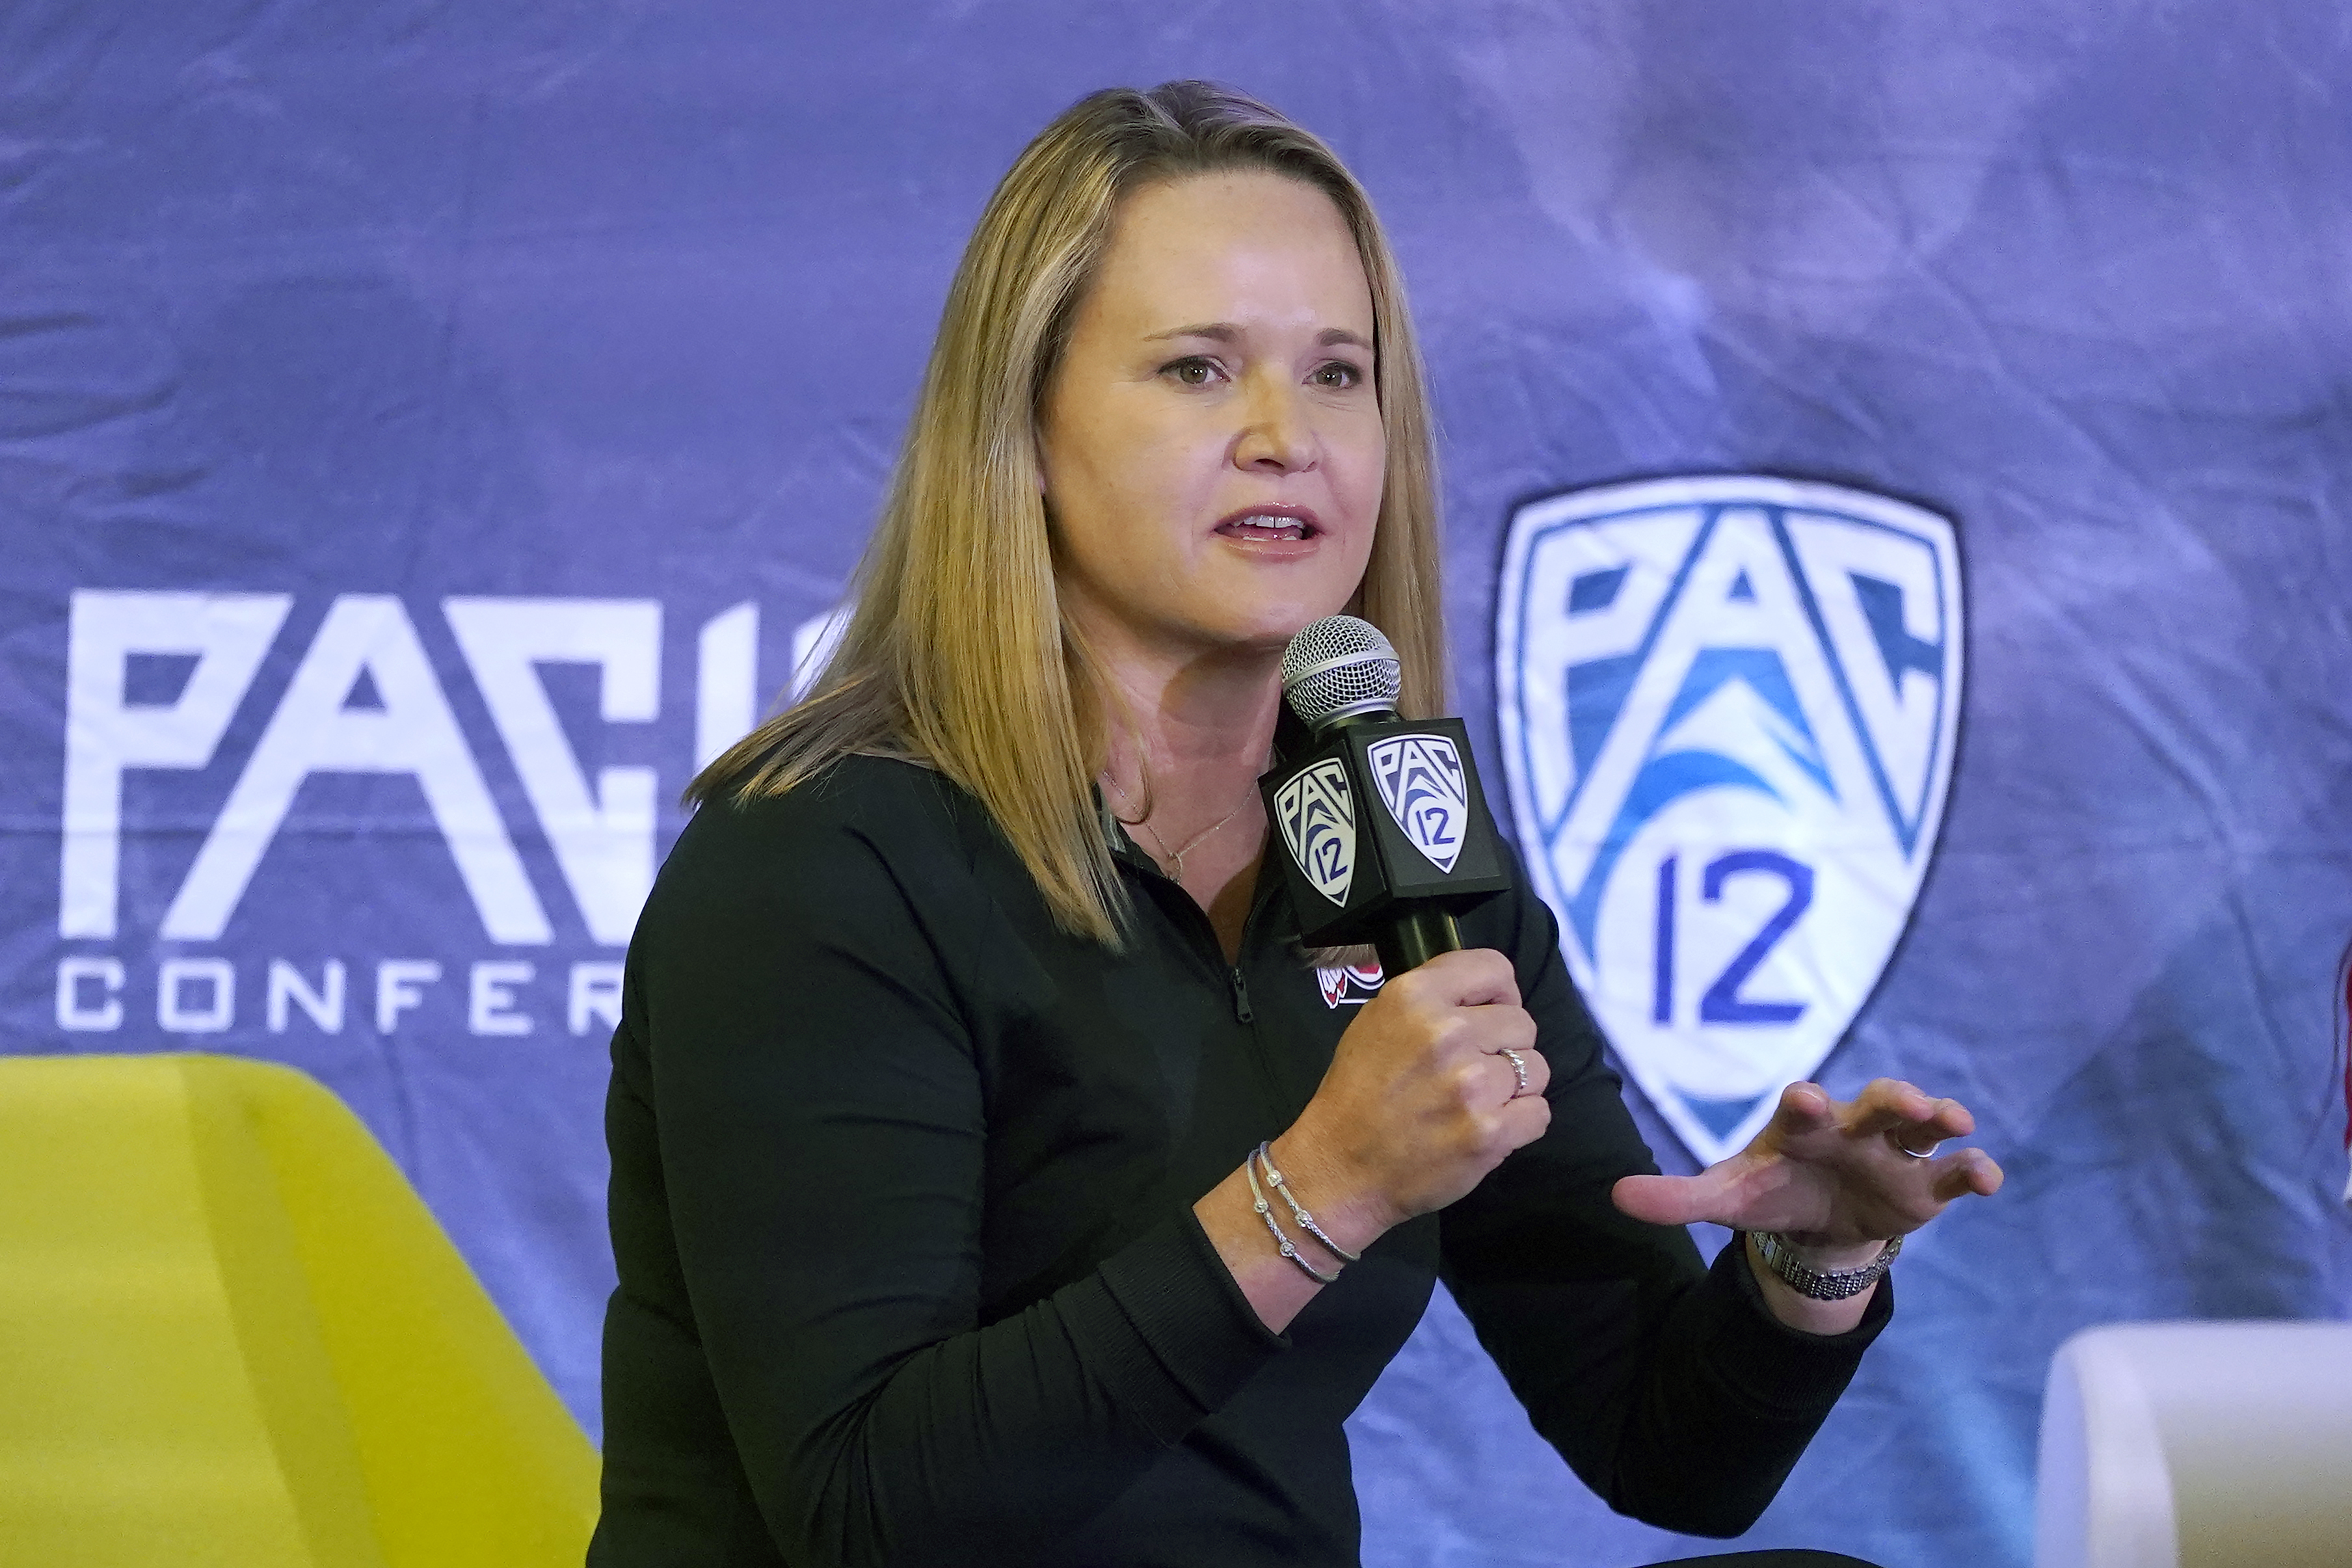 Utah coach Lynne Roberts speaks during Pac-12 media day Tuesday, Oct. 12, 2021, in San Francisco.